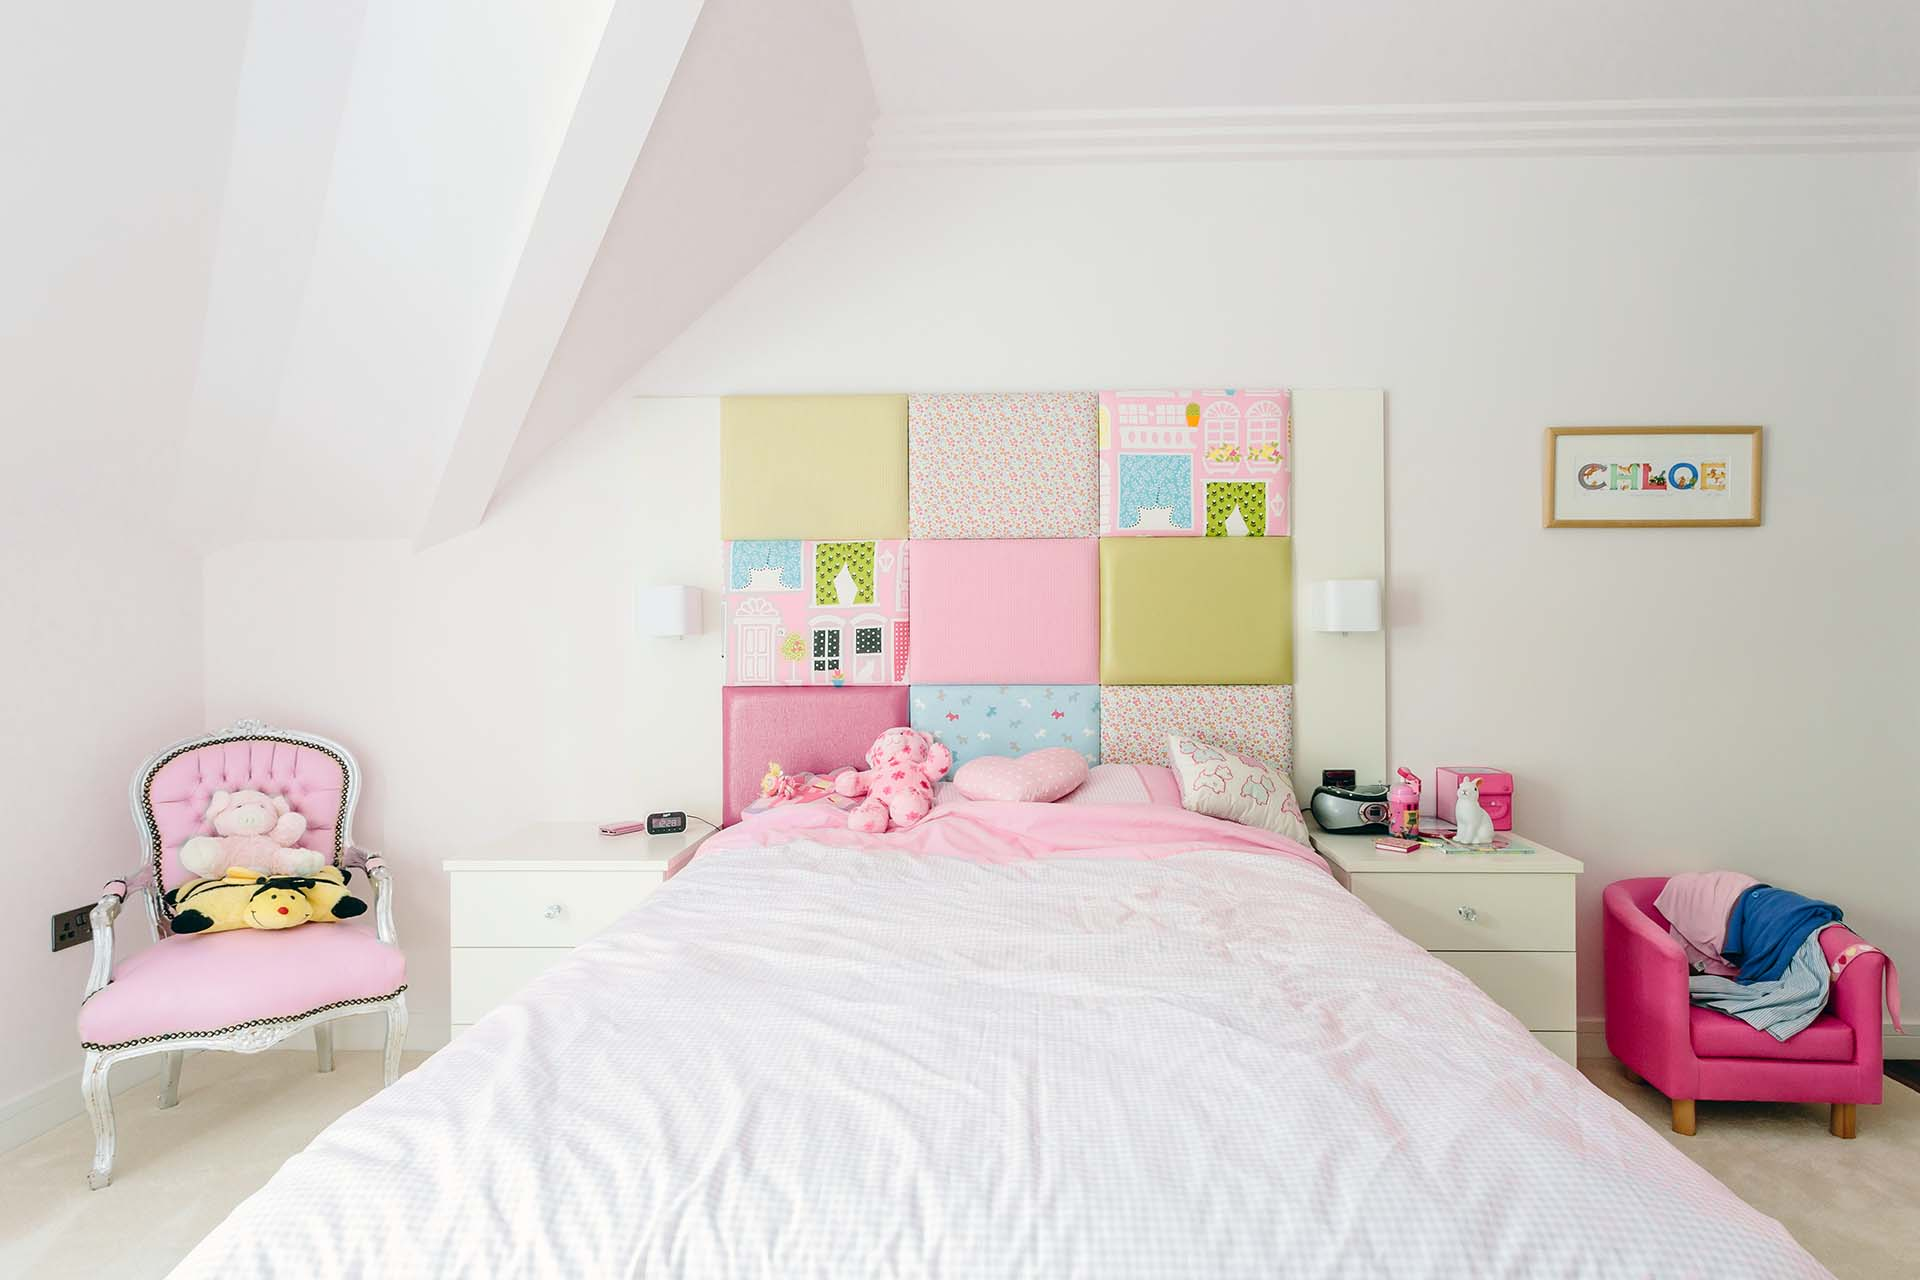 Cabin Bedroom Fitted Furniture: Fitted Children's Bedroom Furniture